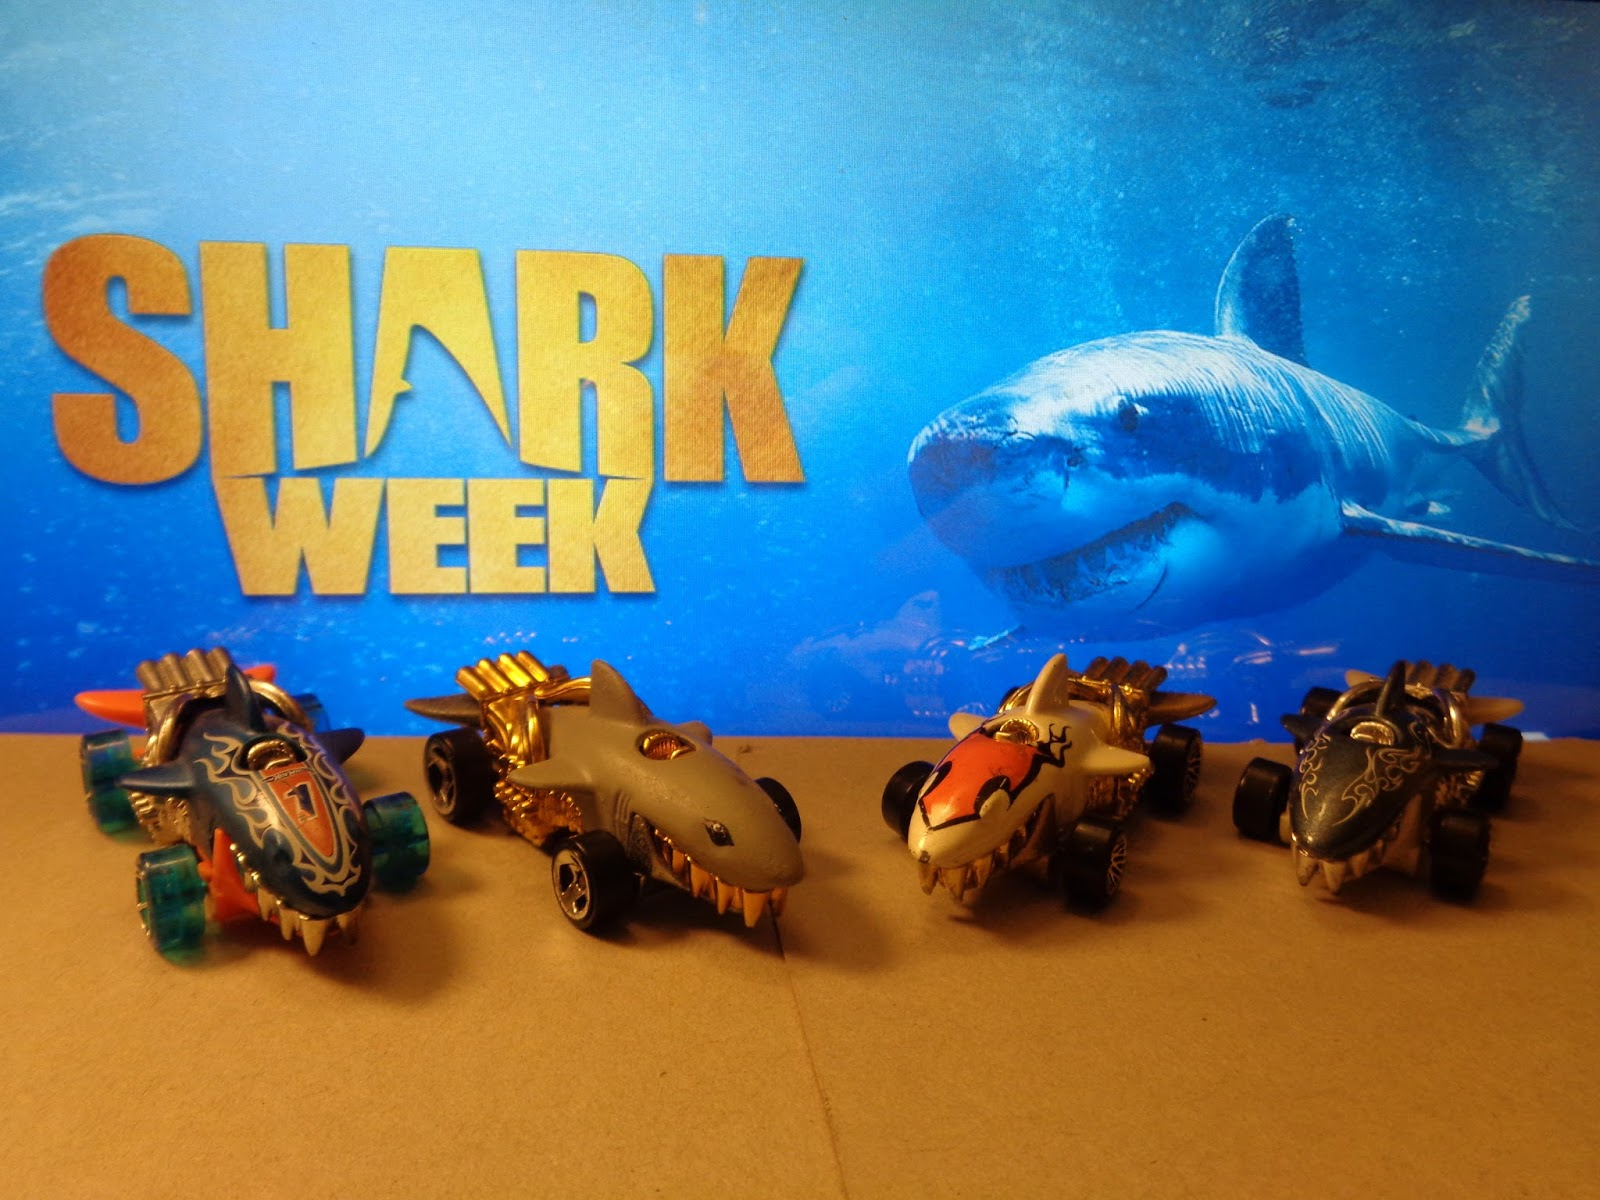 Shark Toys At Walmart : J and toys shark week